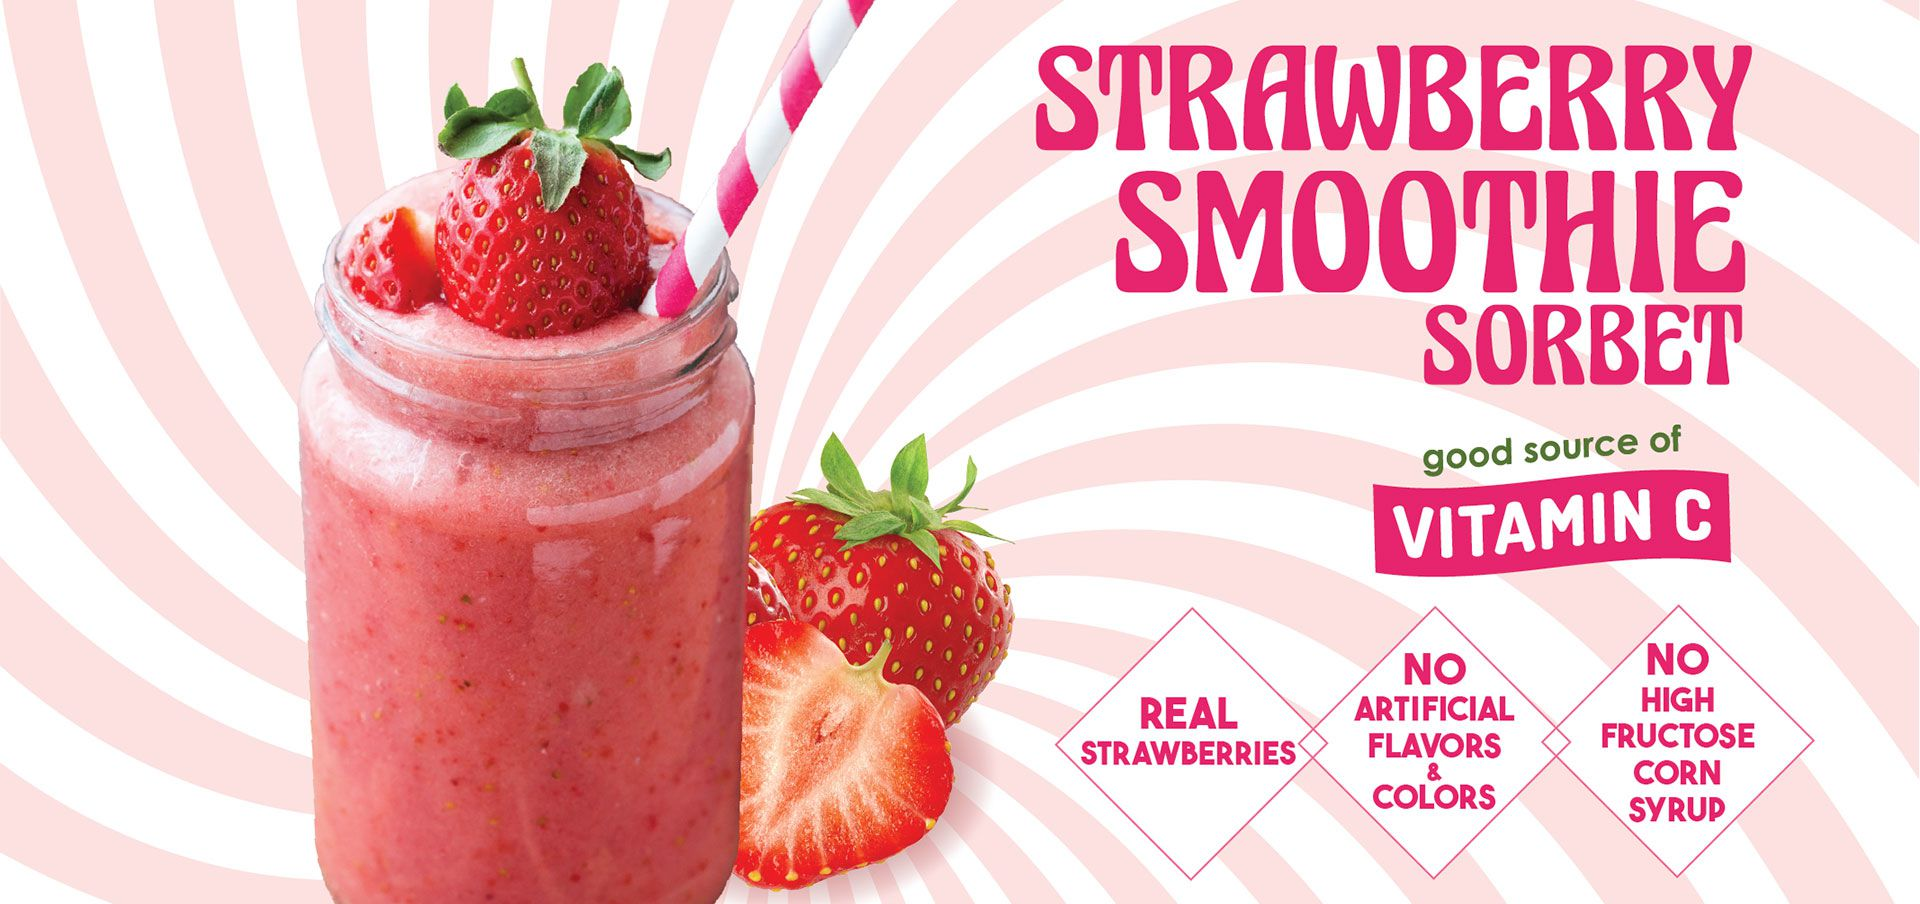 vegan strawberry sorbet label image